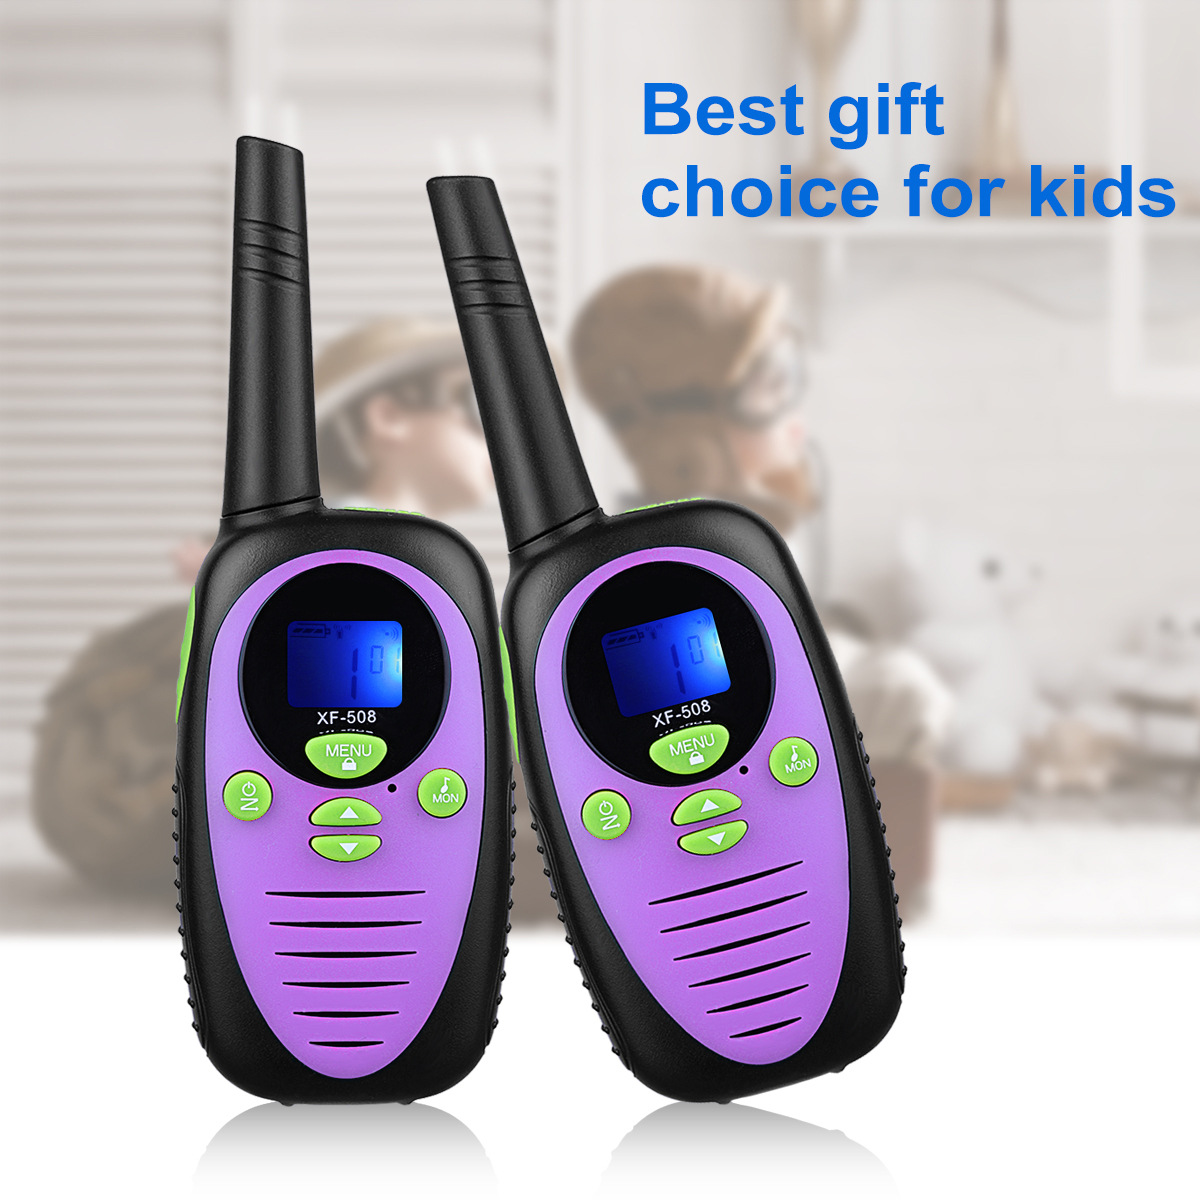 Yooap Children's Toy Walkie-talkie 0.5W Handheld Walkie-talkie Is Convenient For Communication Juguetes Para Ni Os